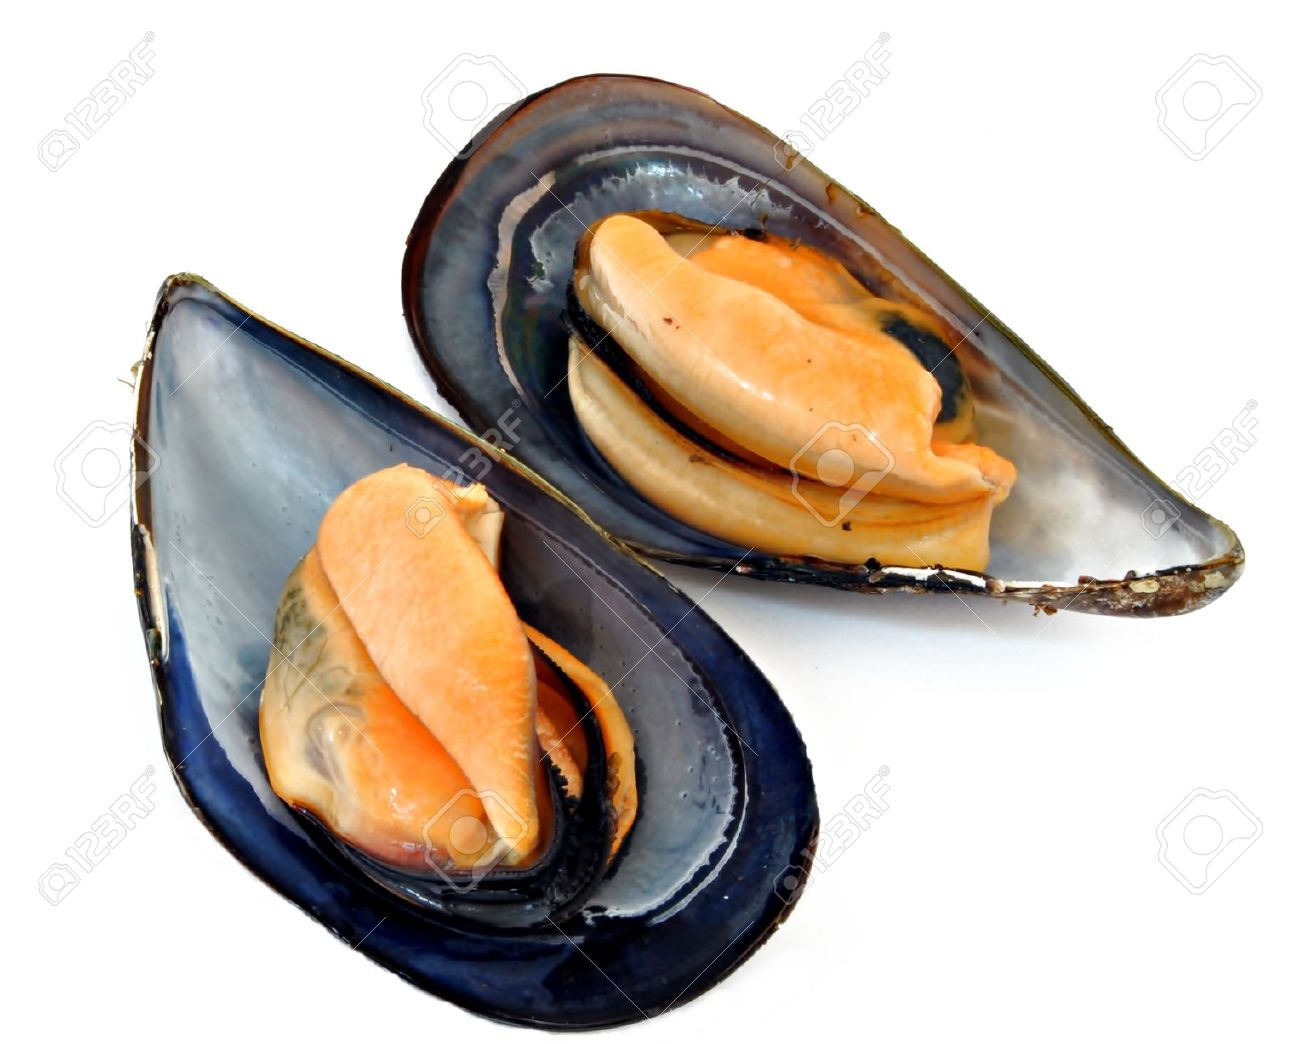 Images of Mussels | 1300x1044